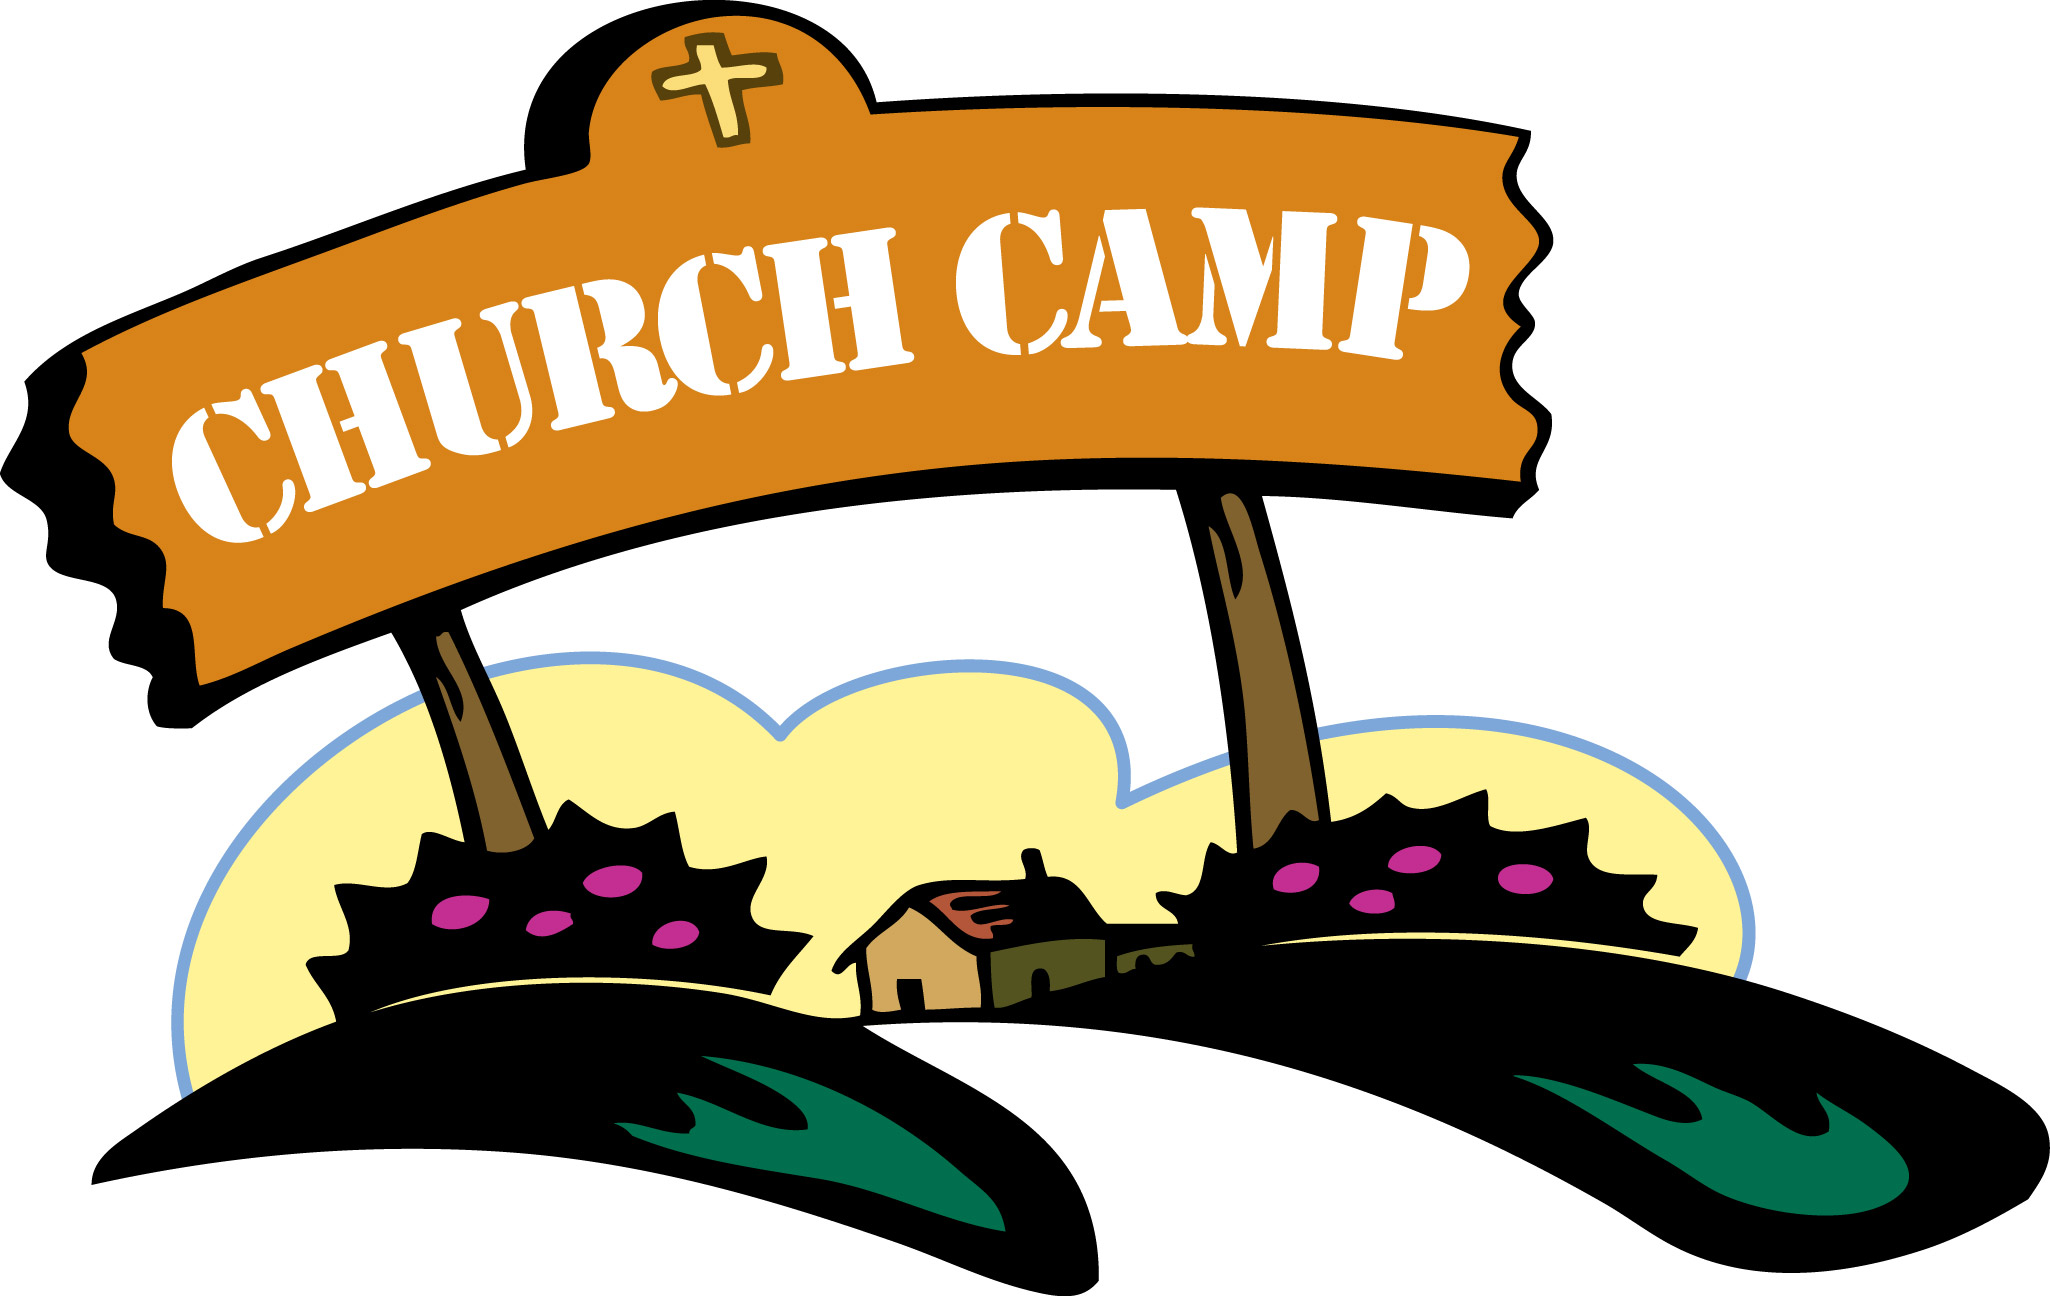 Clipart of the Church Camp free image.